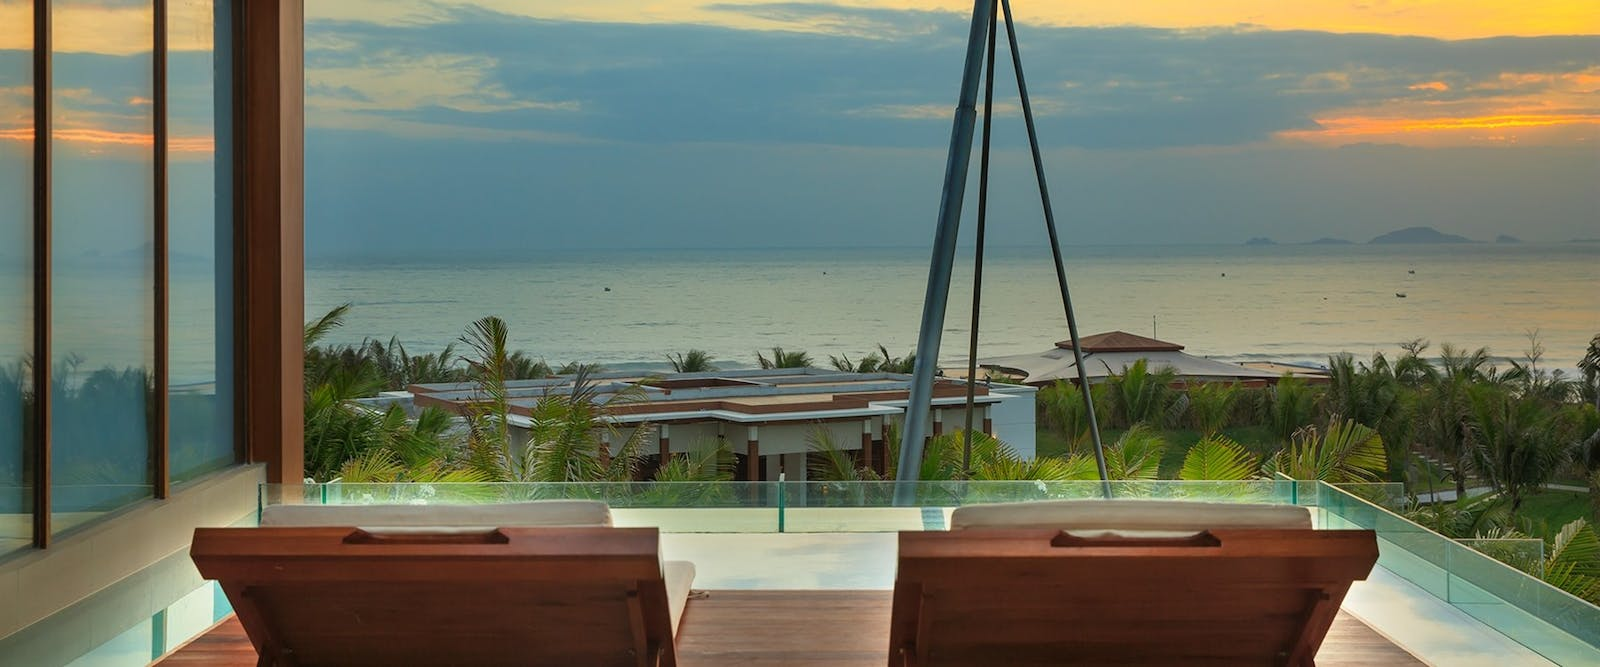 Spa suite outside lounge area at Fusion Resort Nha Trang